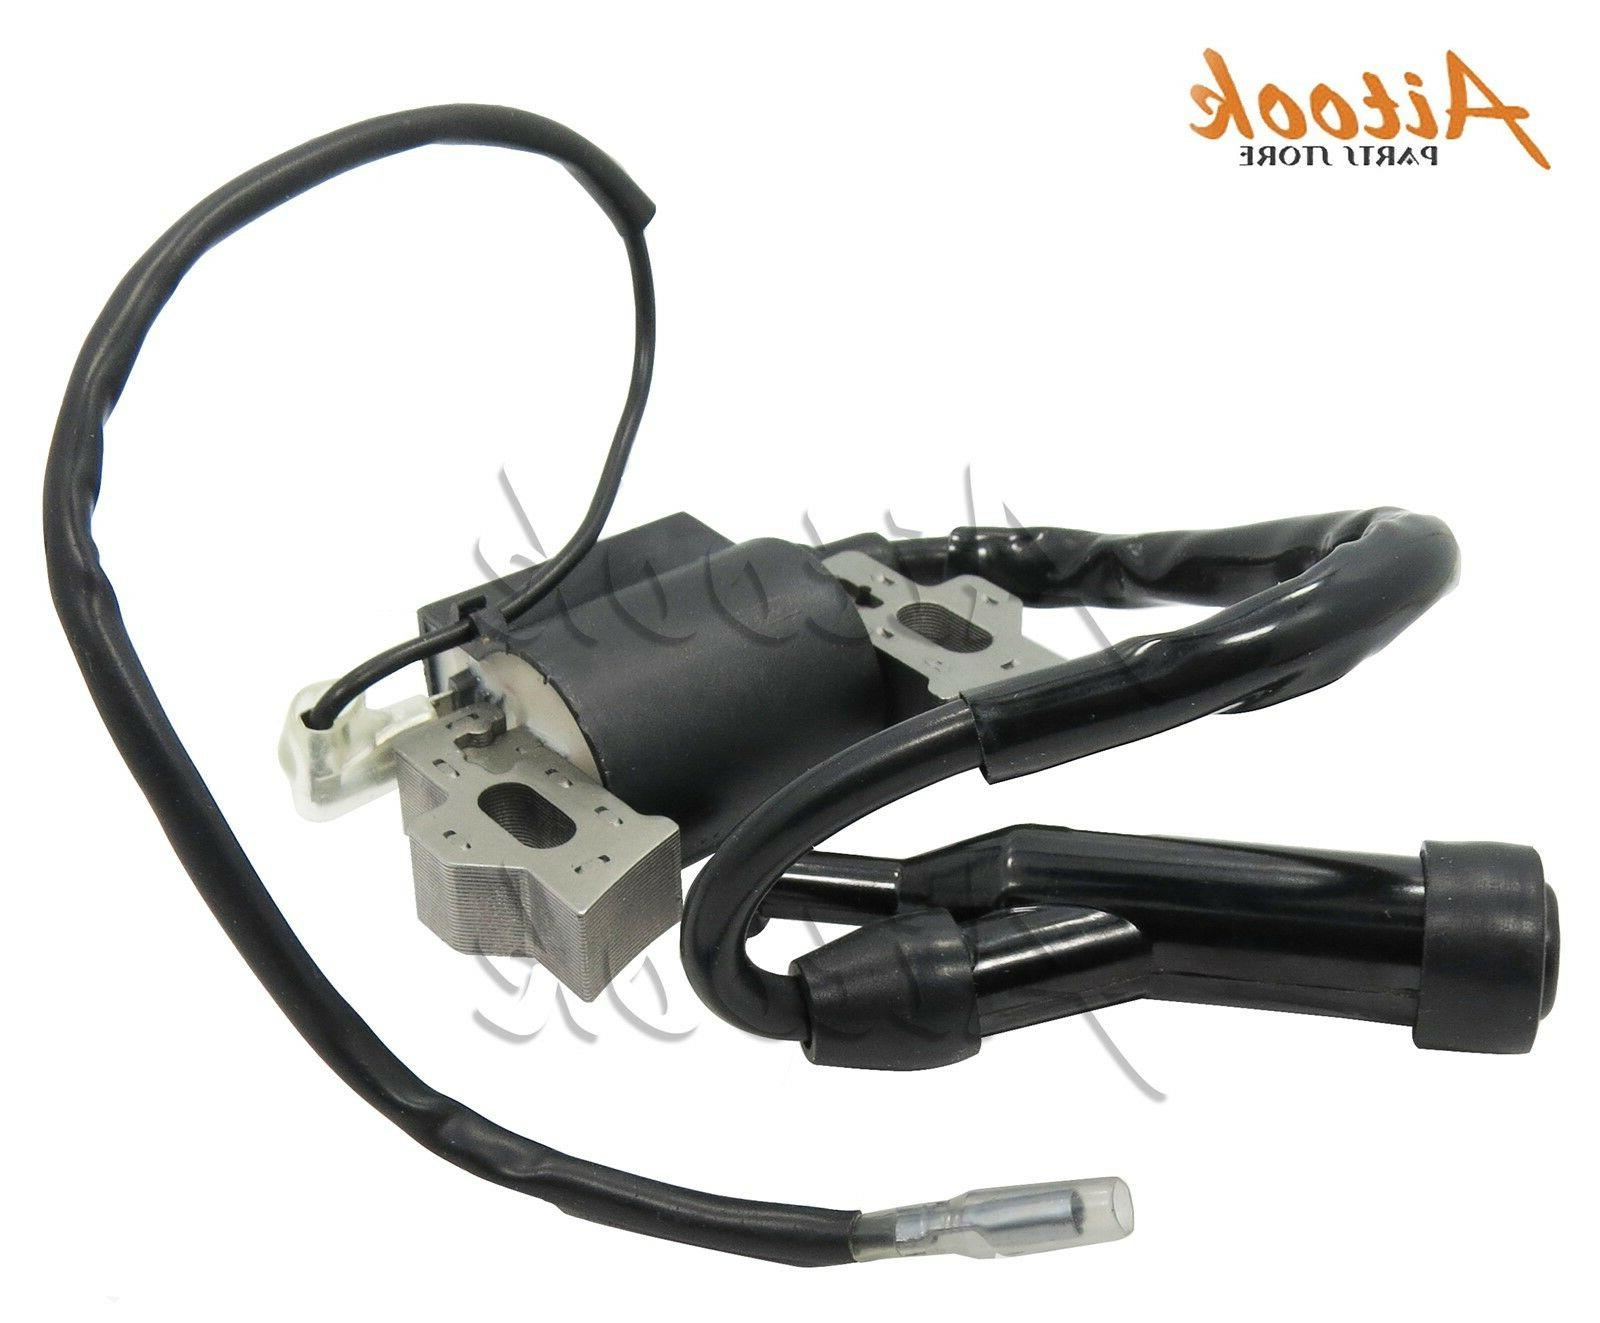 Ignition Coil Module For Honda HONDA GX160 & GX200 5.5HP 6.5